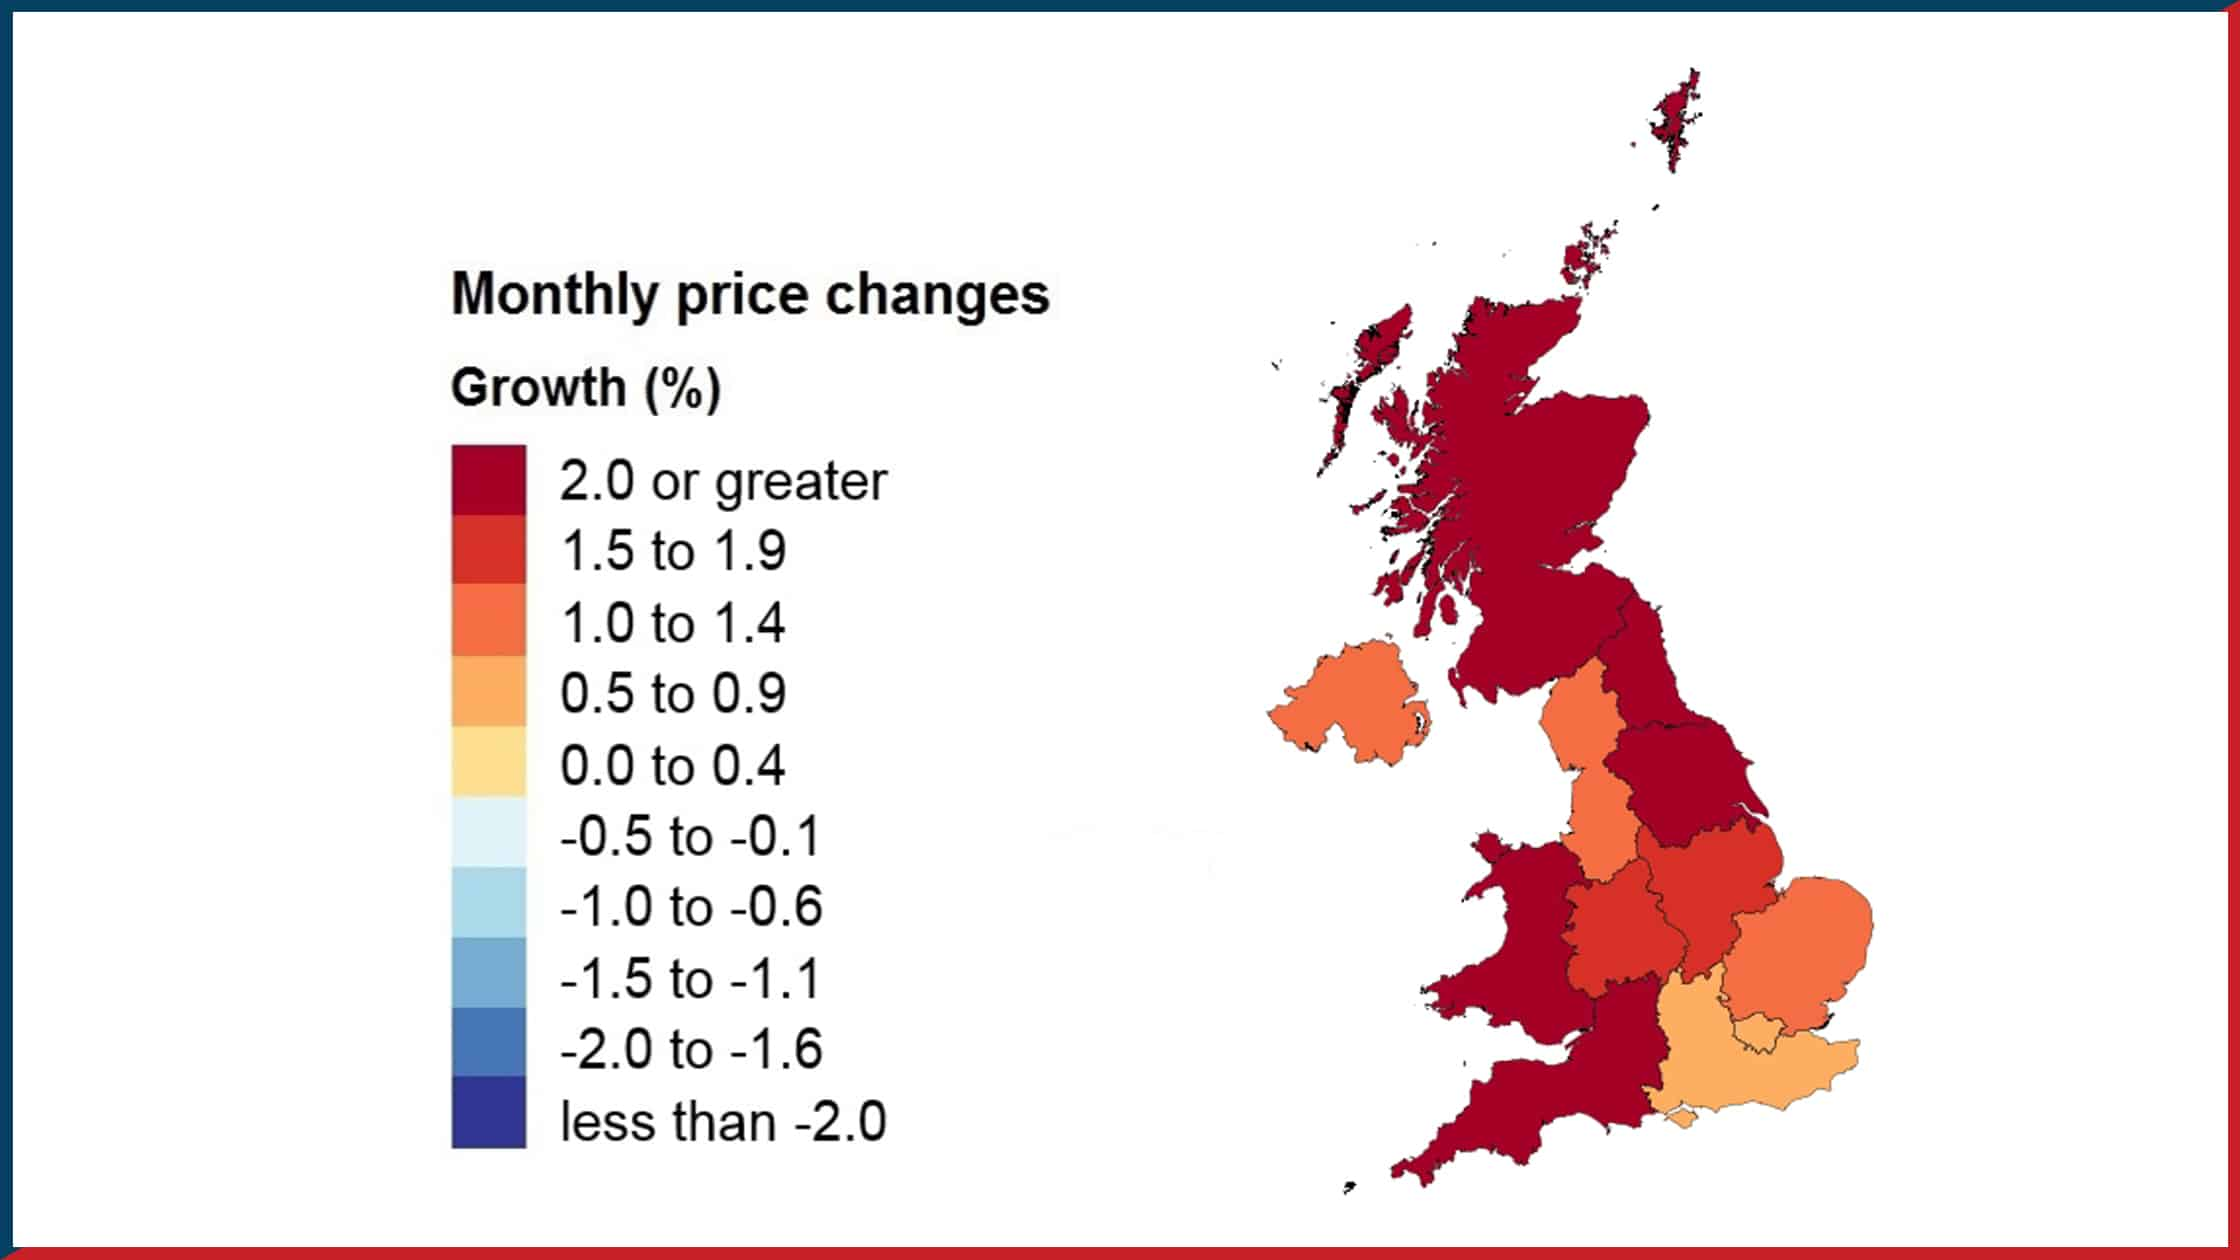 UK Property Price Changes - March 2021